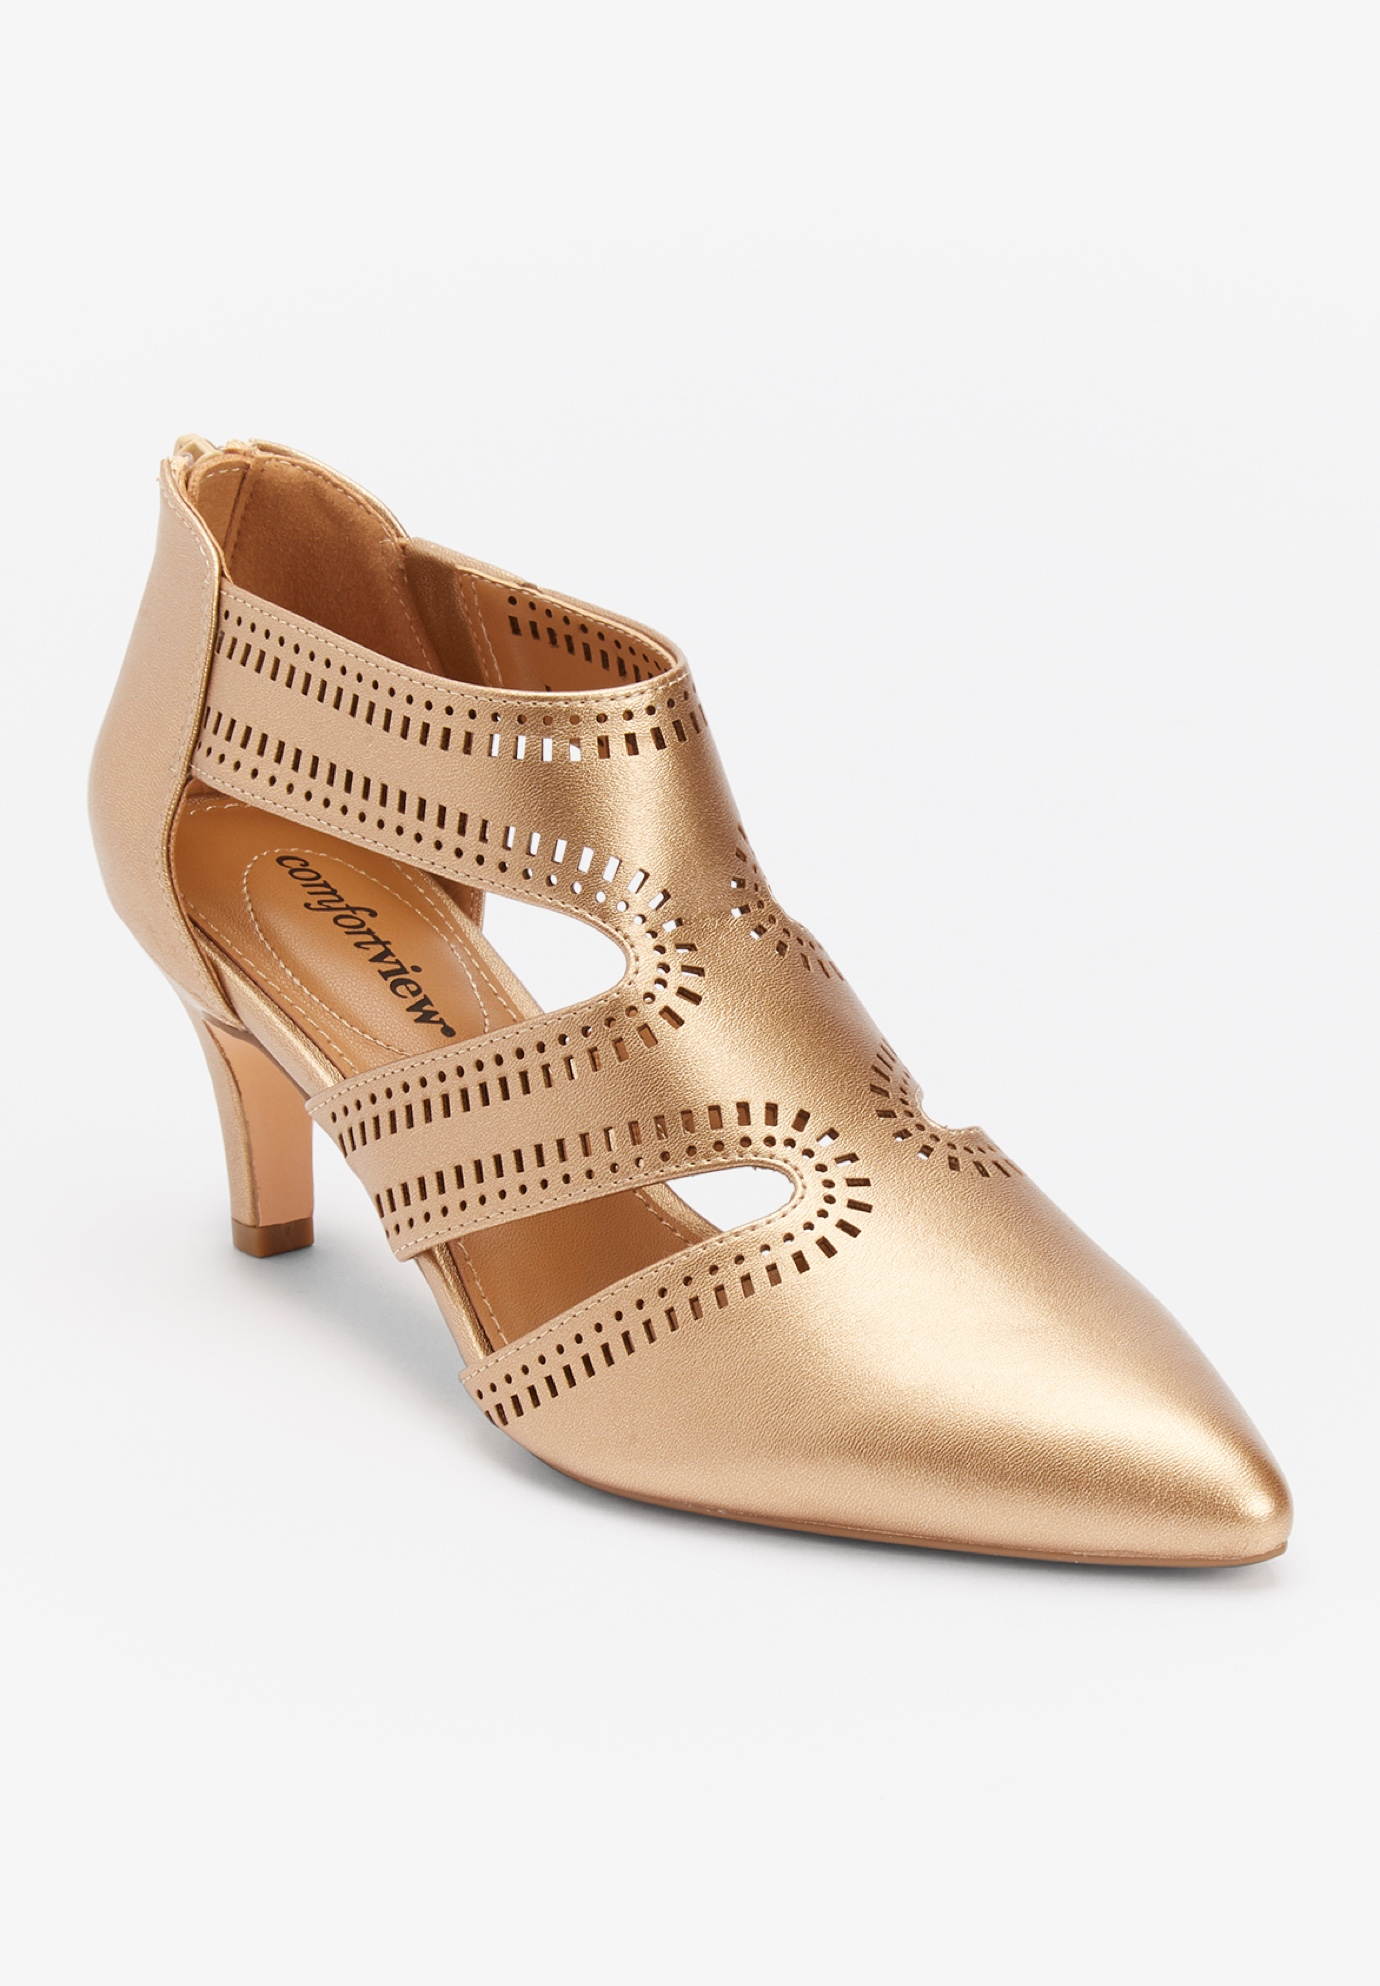 The Gia Shootie ,